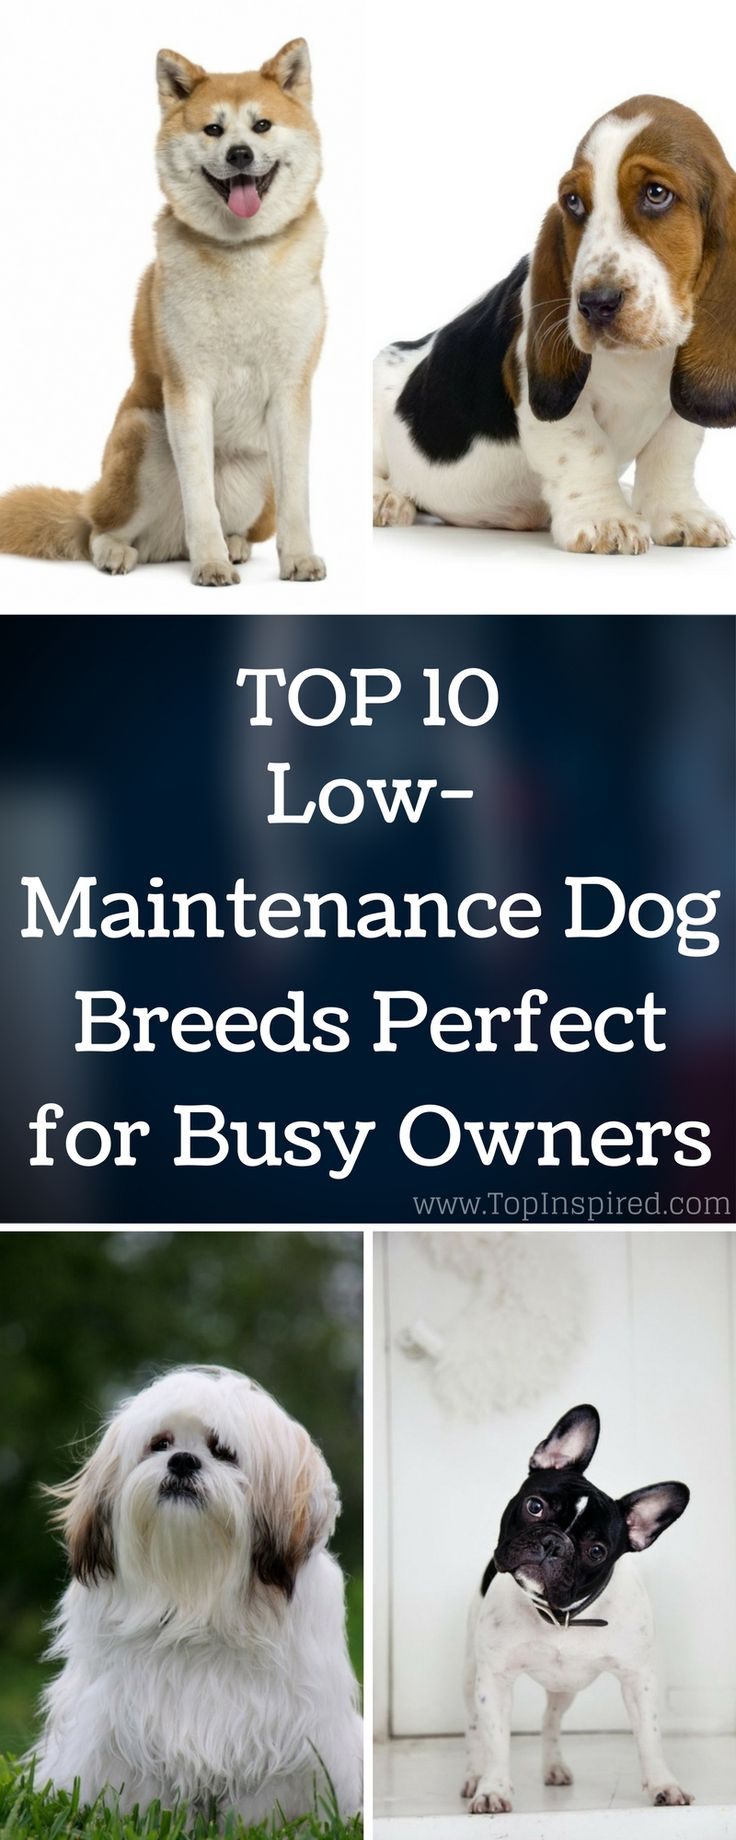 Top 10 Low-Maintenance Dog Breeds Perfect for Busy Owners via @Topinspired